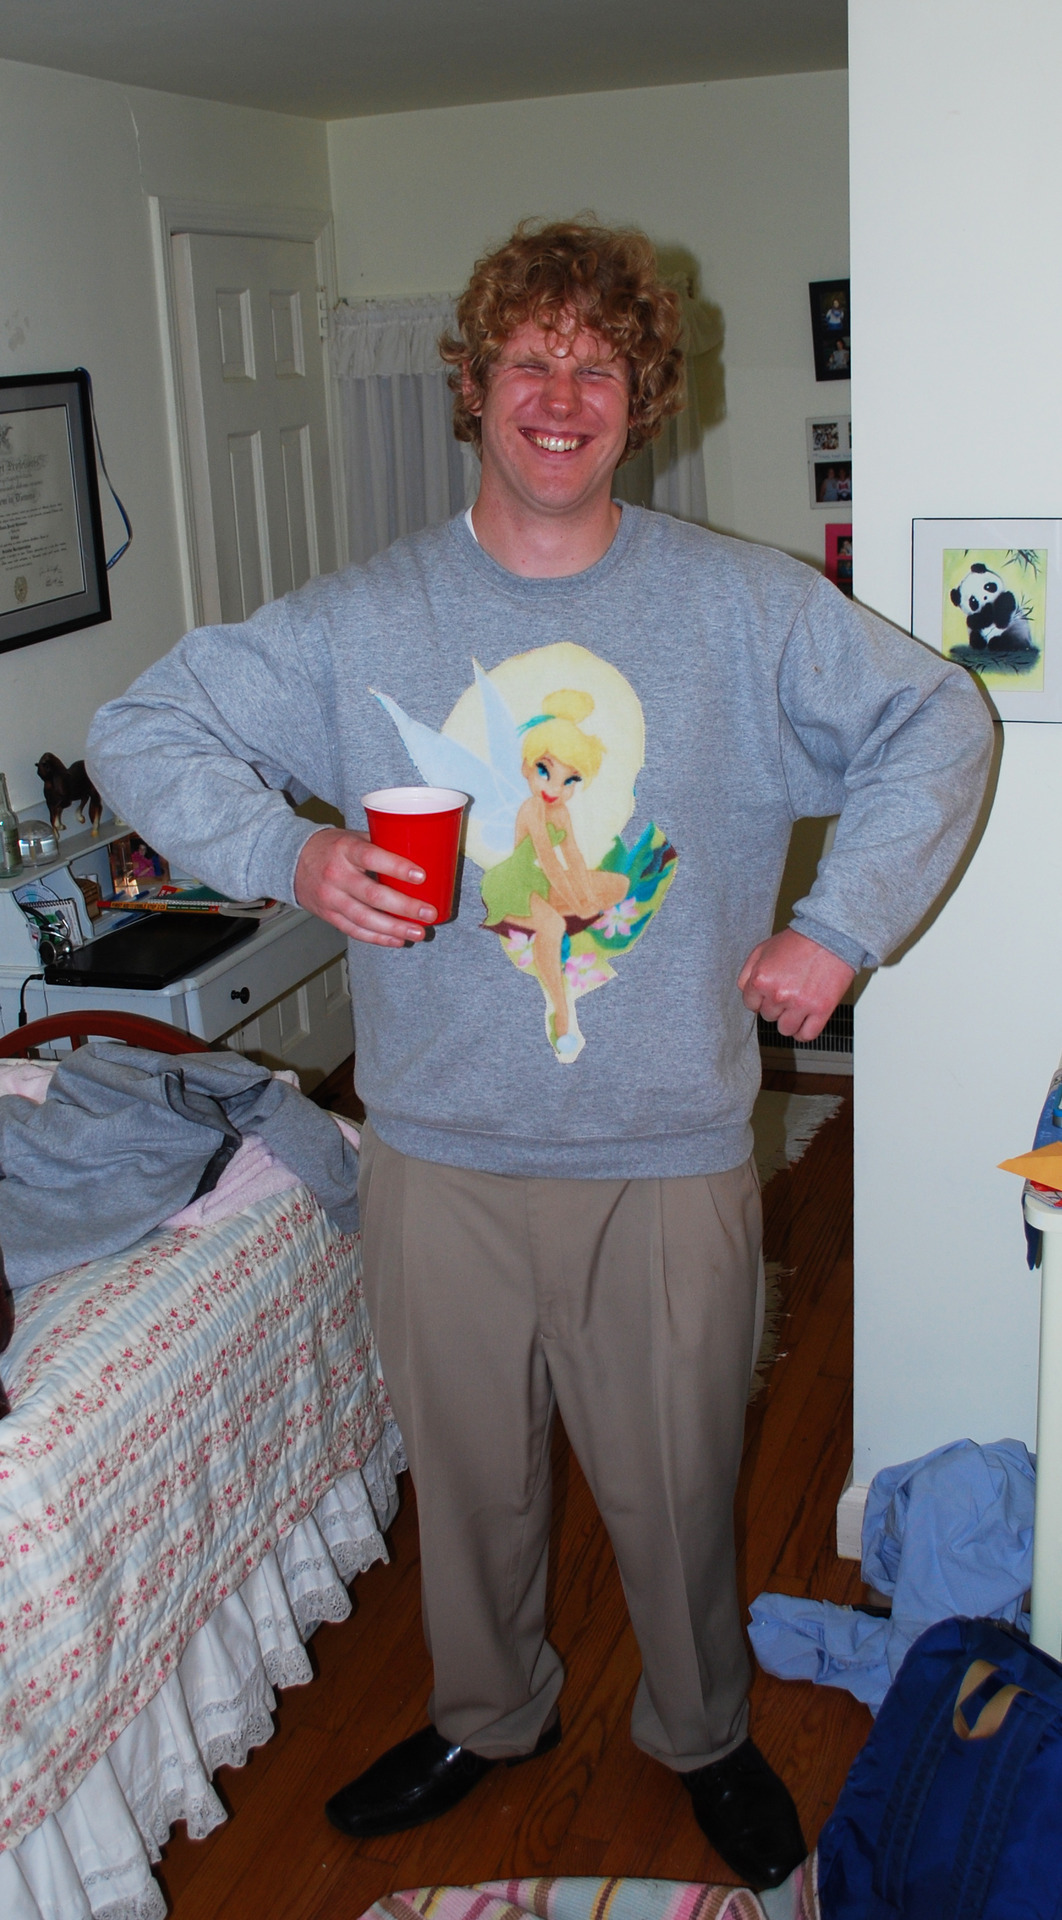 Made the sweatshirt for this very great friend. Congratulations to Brendan on his engagement.  For more original creations and content, please visit www.pzntlab.tumblr.com/tagged/PZNT   Thank you -PZNT